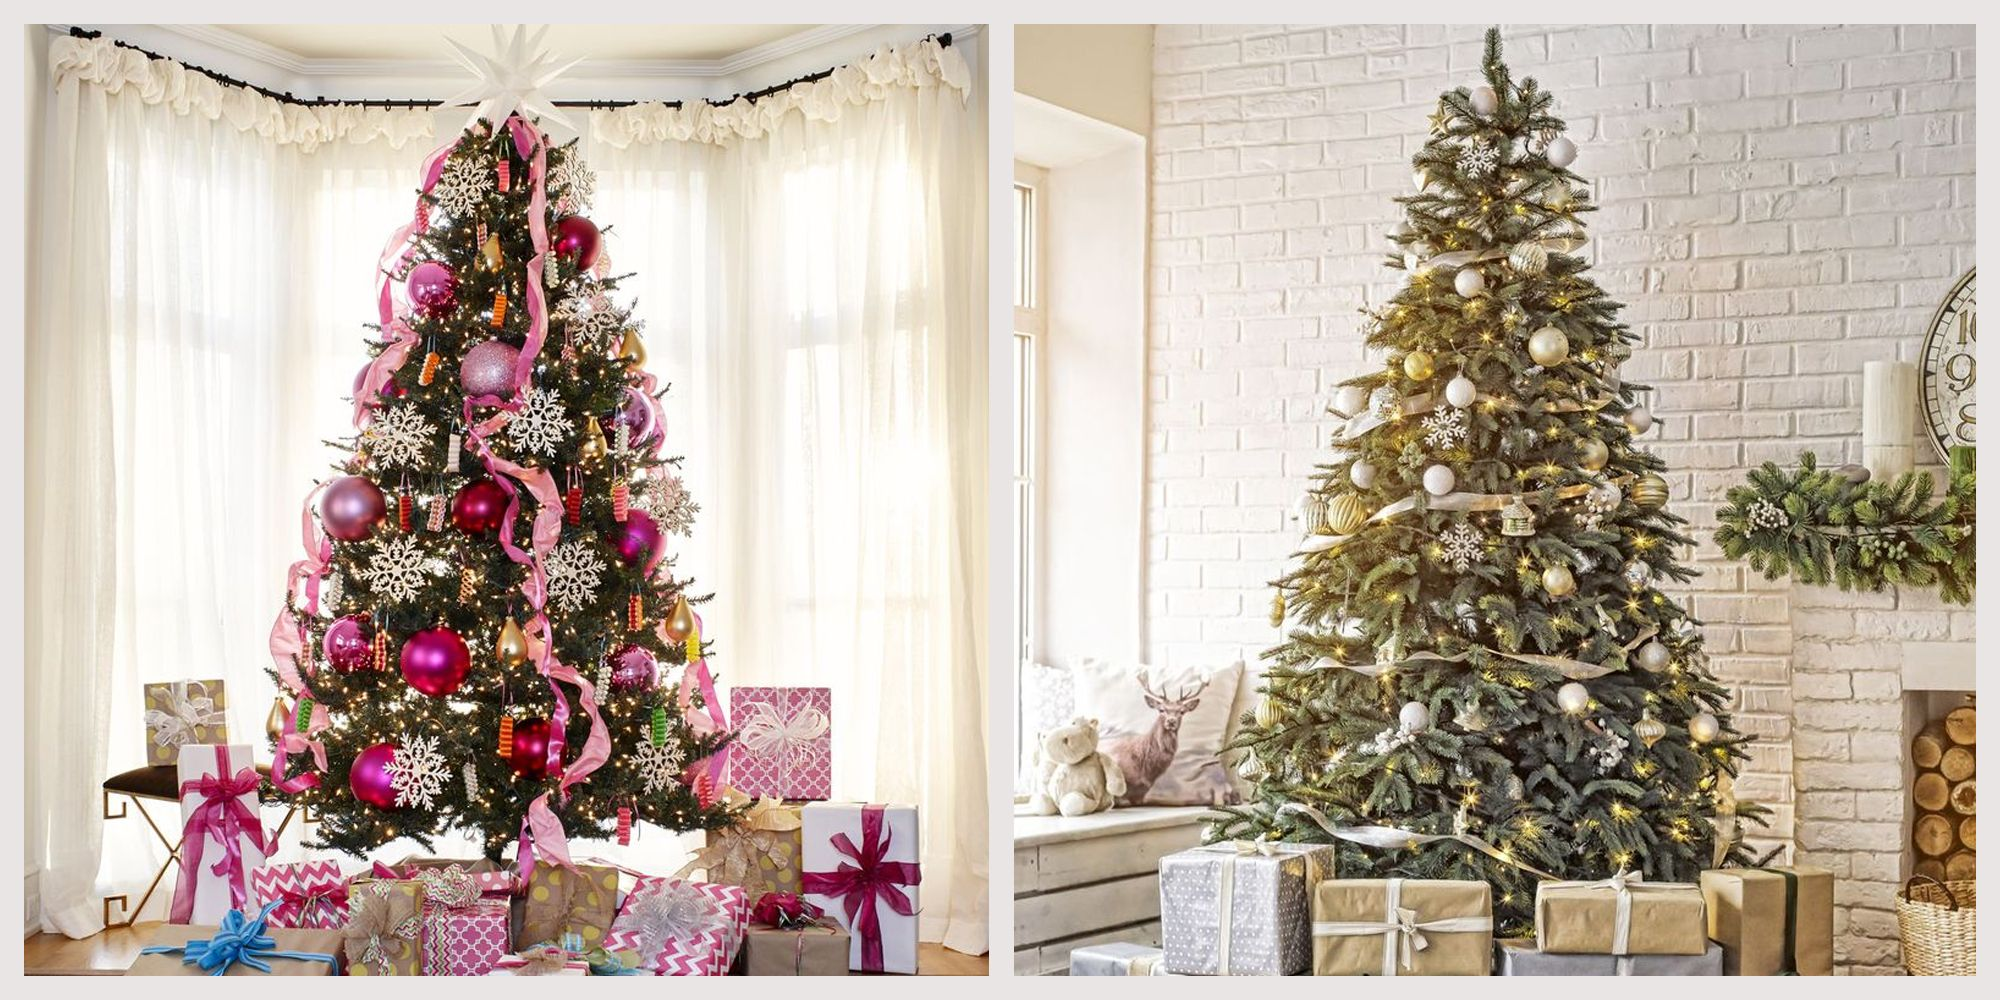 65 Stunning Christmas Tree Ideas 2019 Best Christmas Tree Decorations